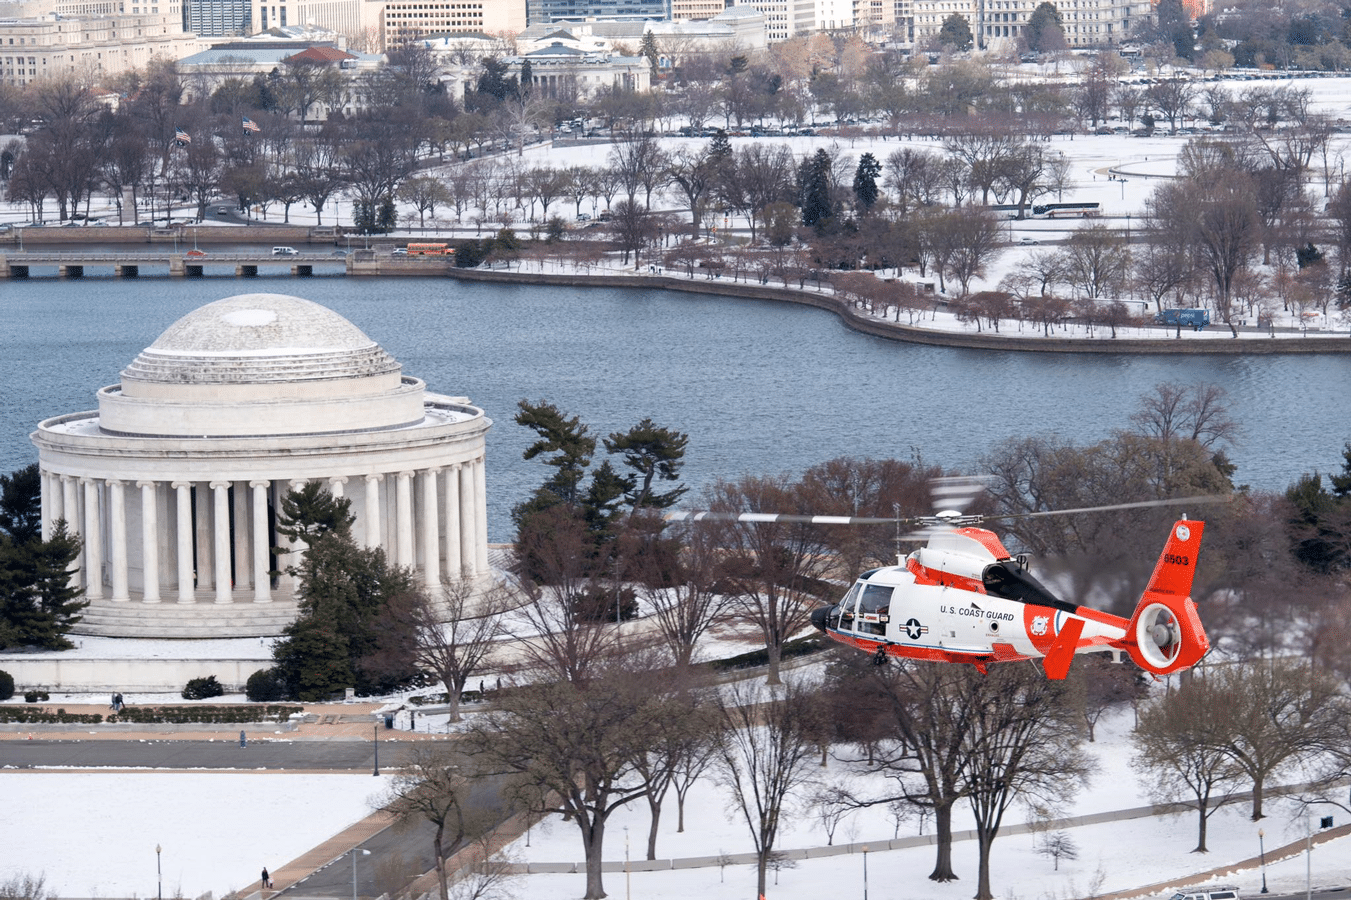 U.S. Coast Guard Auxiliary member David Lau captured this image of a U.S. Coast Guard Air Station Atlantic City MH-65 Dolphin helicopter crew conducting patrols over Washington, D.C., last week. The aircrews support the National Capital Region Air Defense Facility (NCRADF) by supplying multiple aircraft to assist NORAD and USNORTHERN Command.